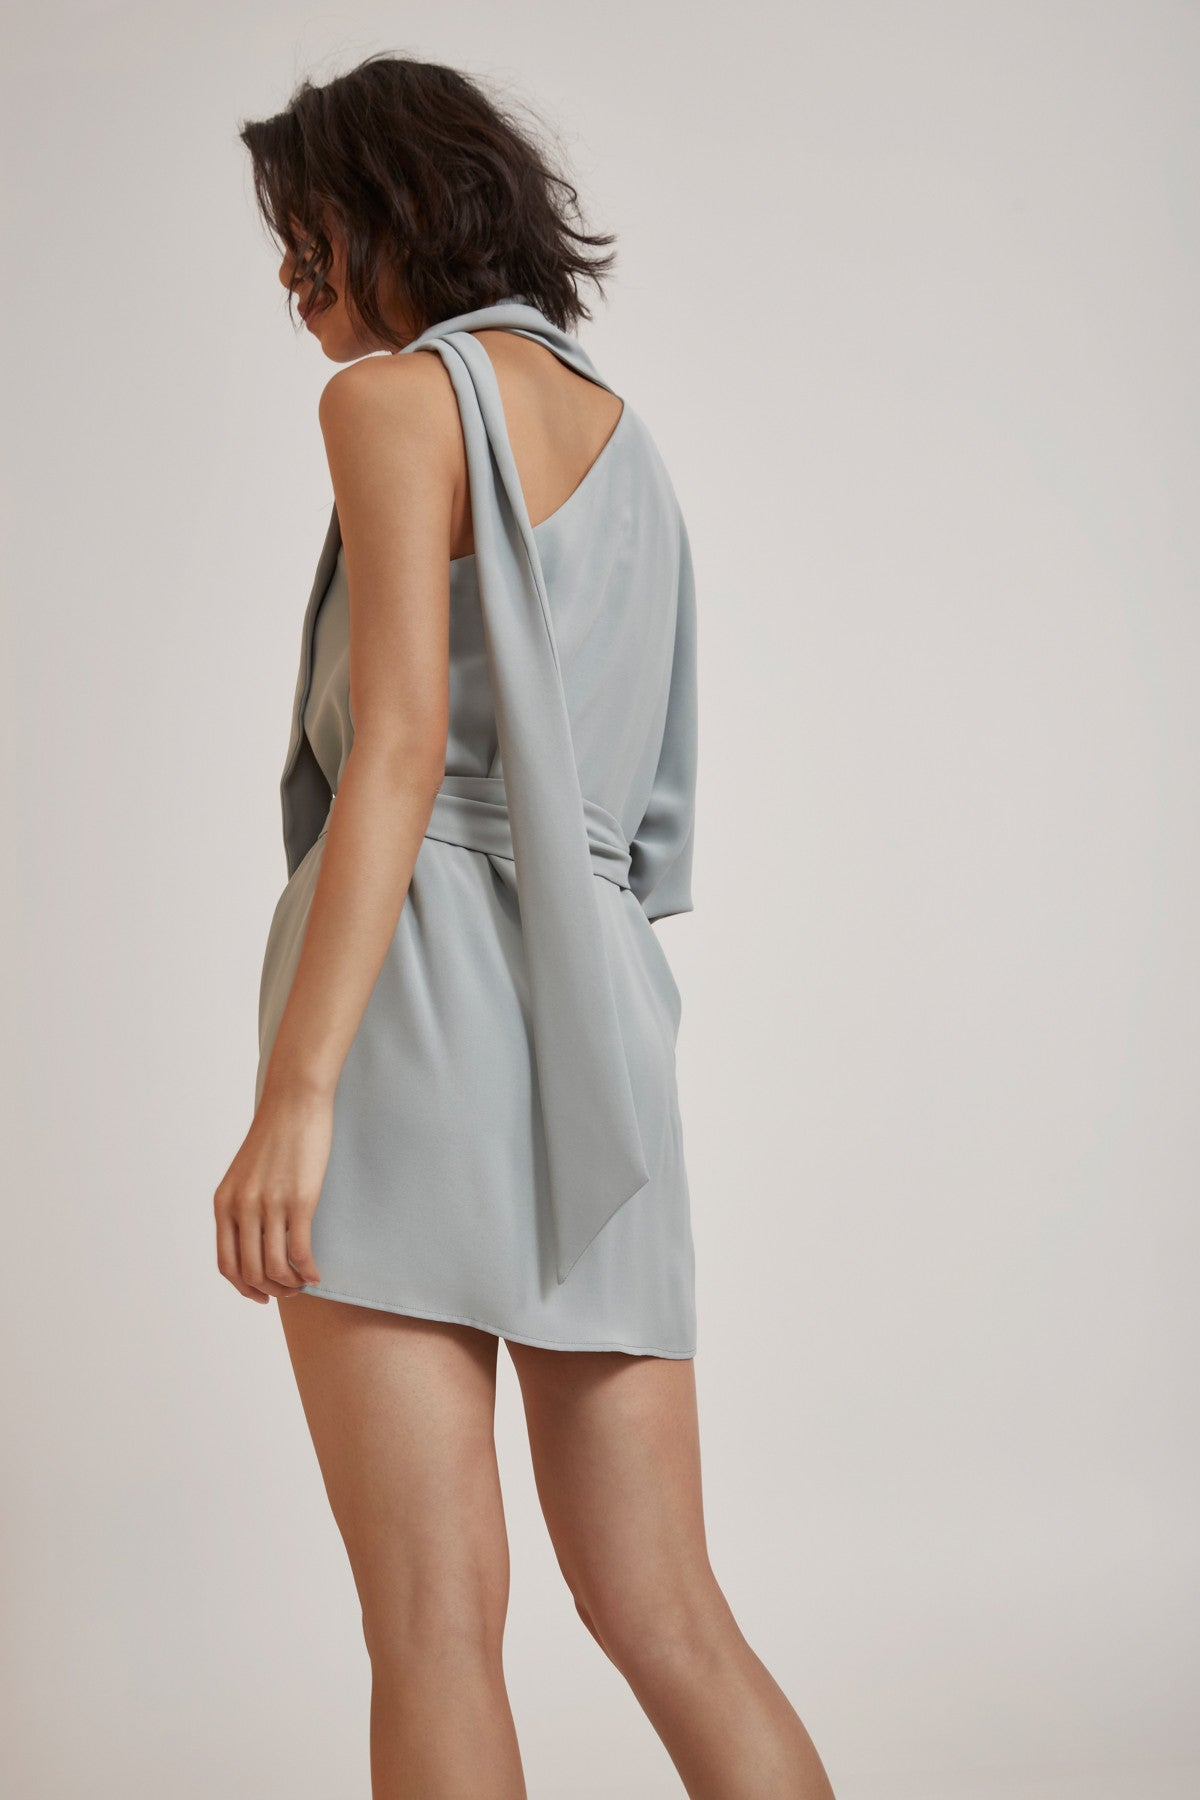 EVERLASTING ONE SHOULDER DRESS seafoam